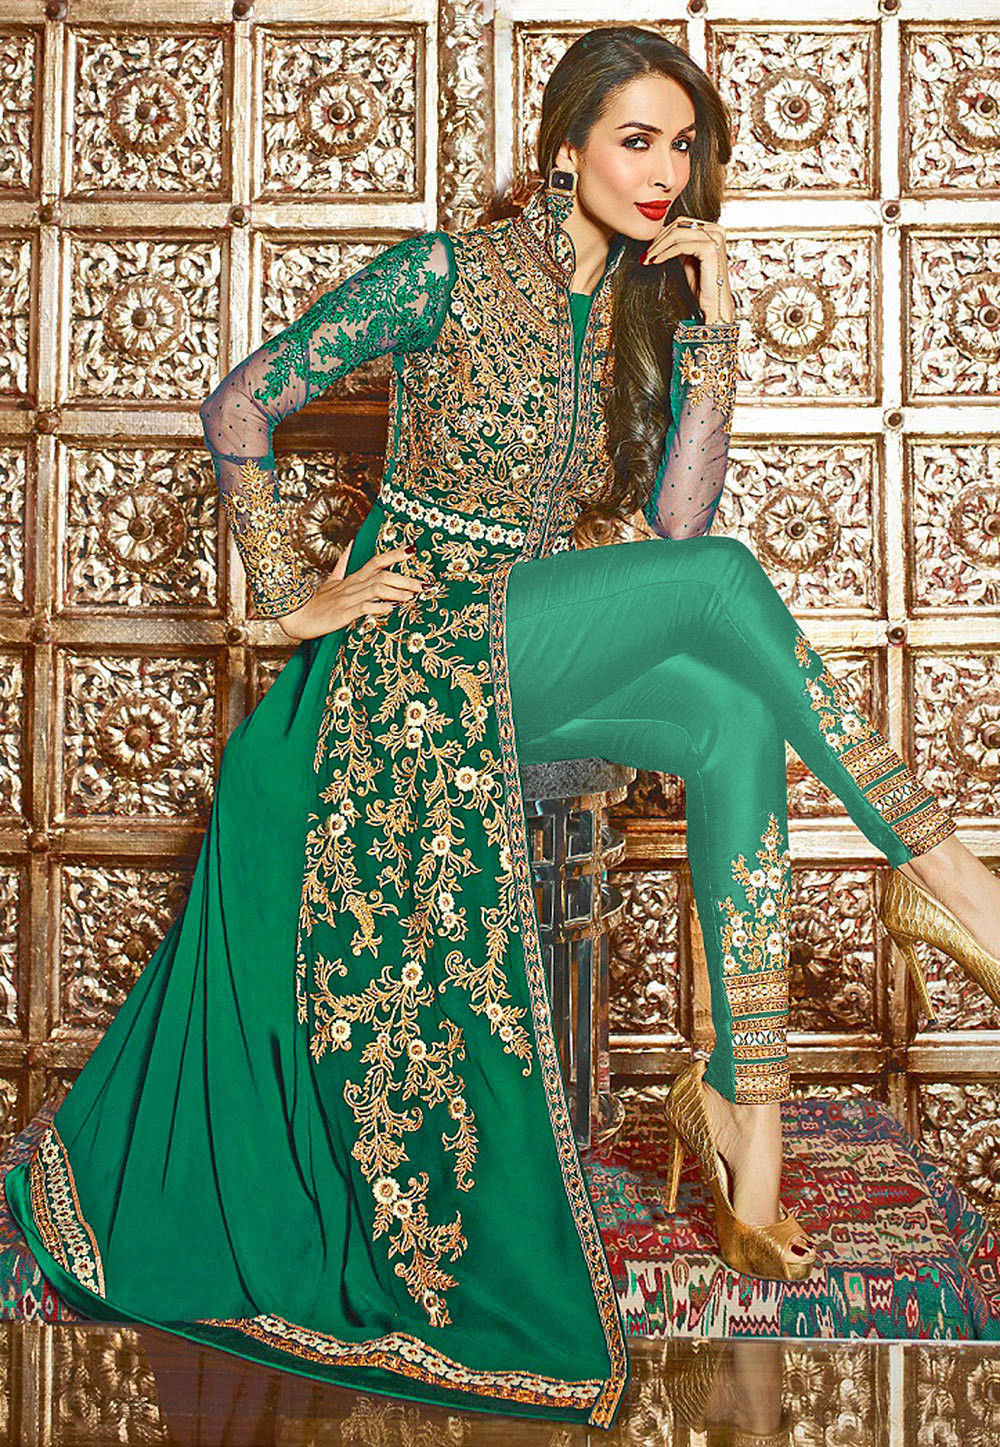 Embroidered Georgette Jacket Style Abaya Suit in Teal Green